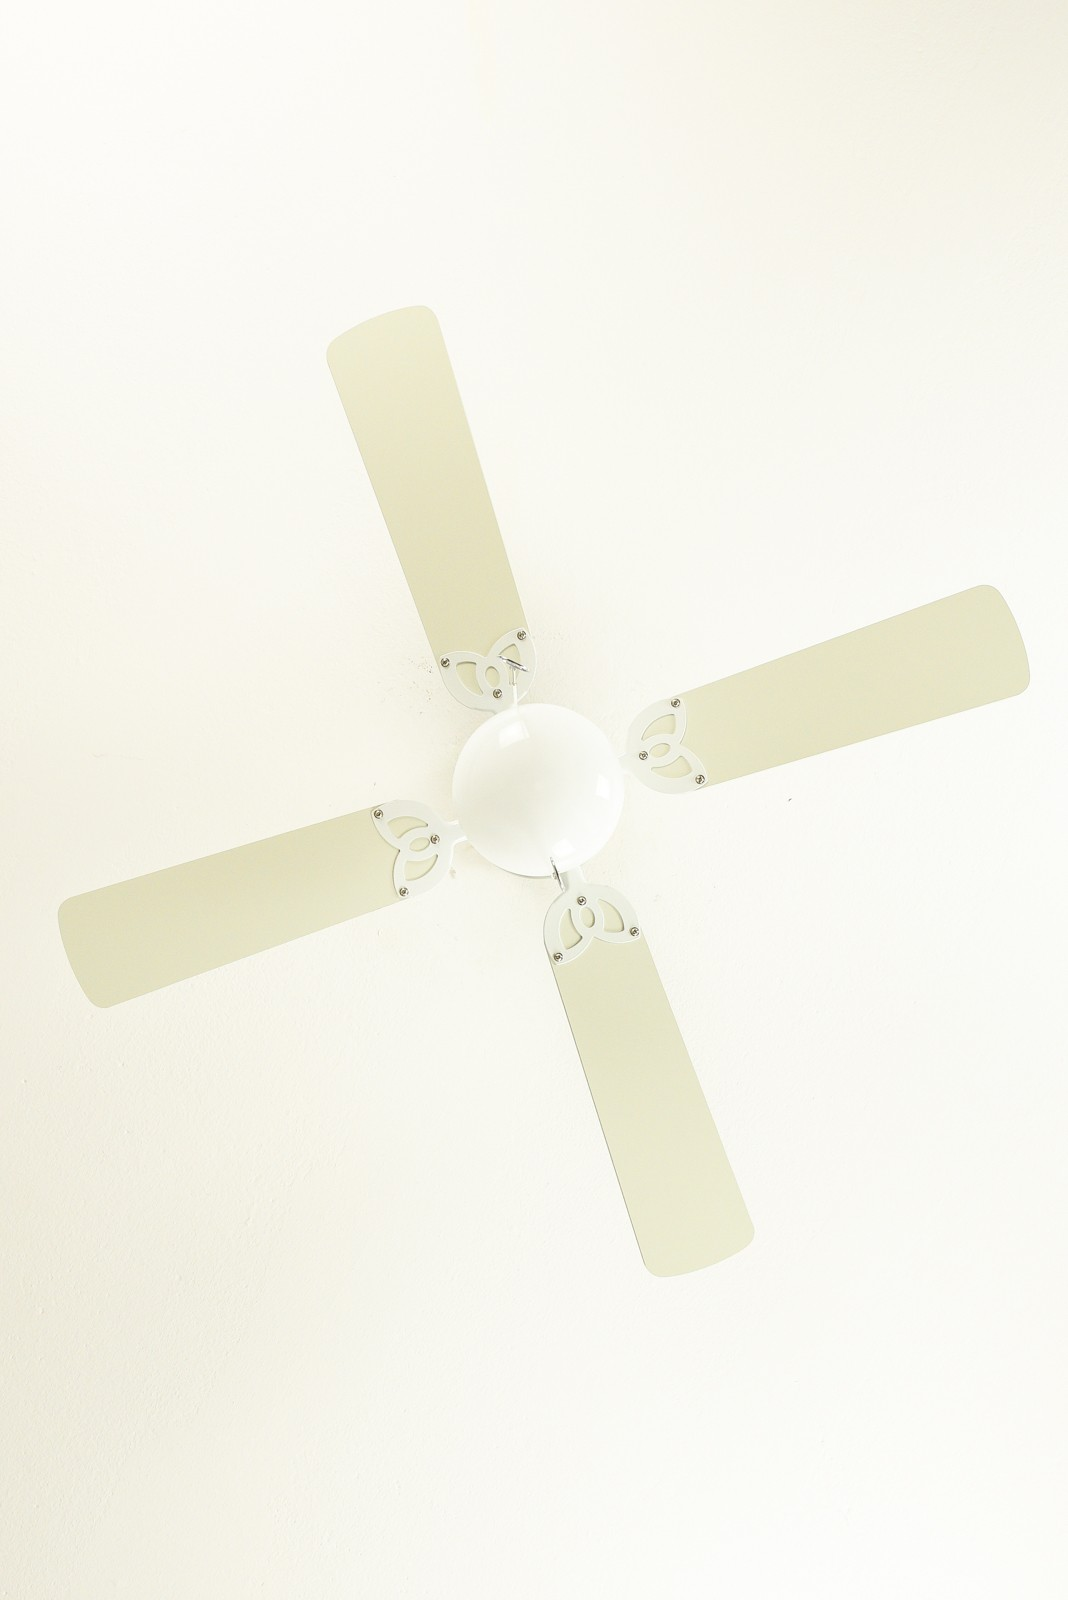 Westinghouse ceiling fan vegas white 105 cm 42 with lighting westinghouse ceiling fan vegas white 105 cm 42quot with lighting aloadofball Image collections